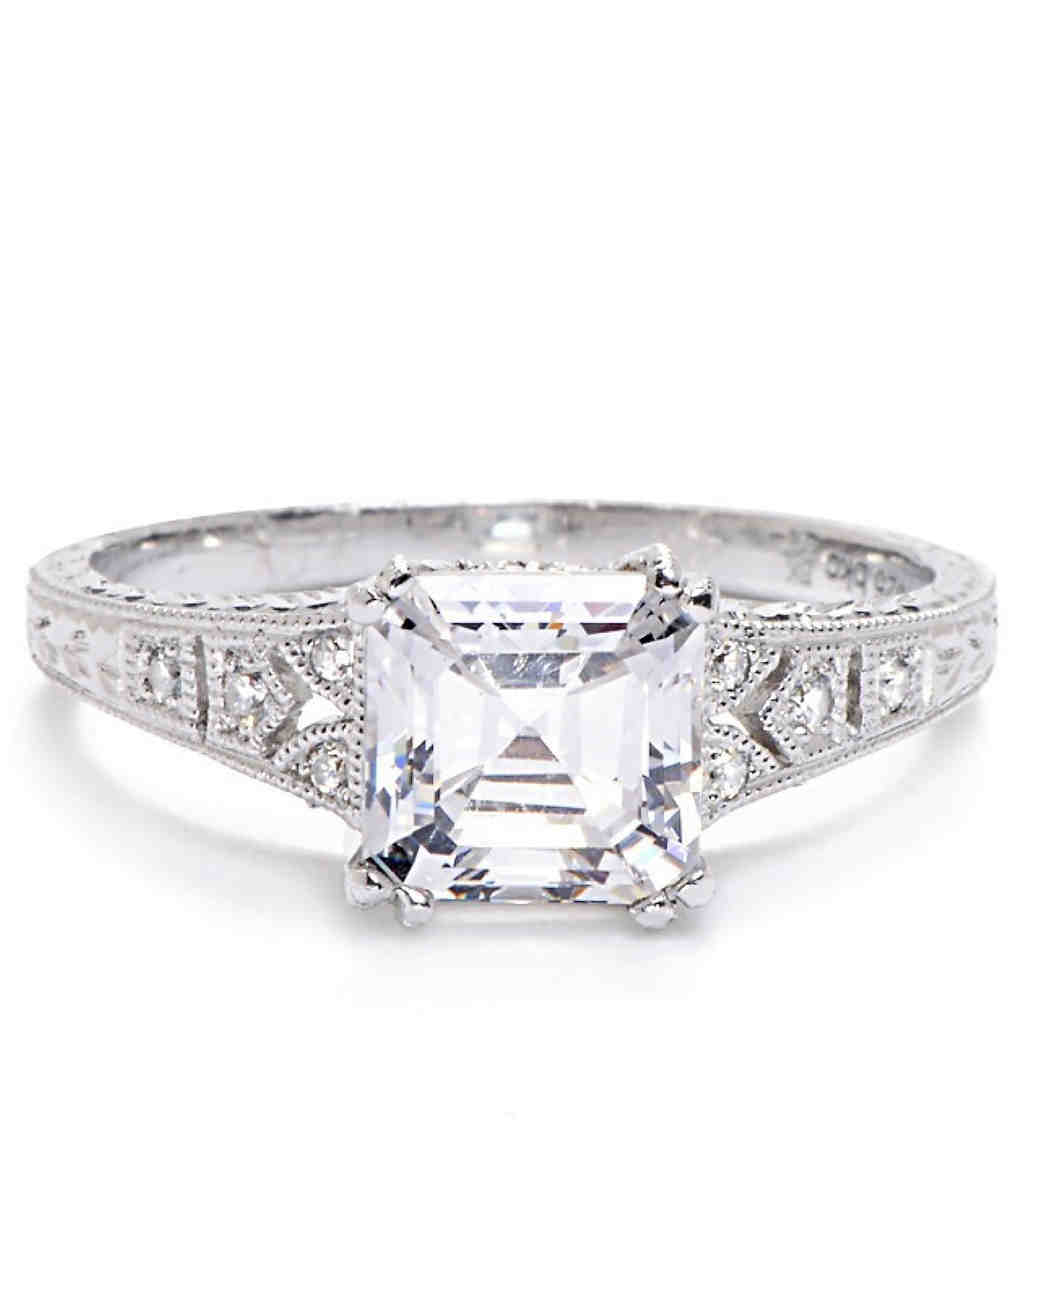 cs this rings in banner sequence diamonds of important second one four determine rectangular diamond highlighted quality royal c coster s or cut engagement polished a shape is the to